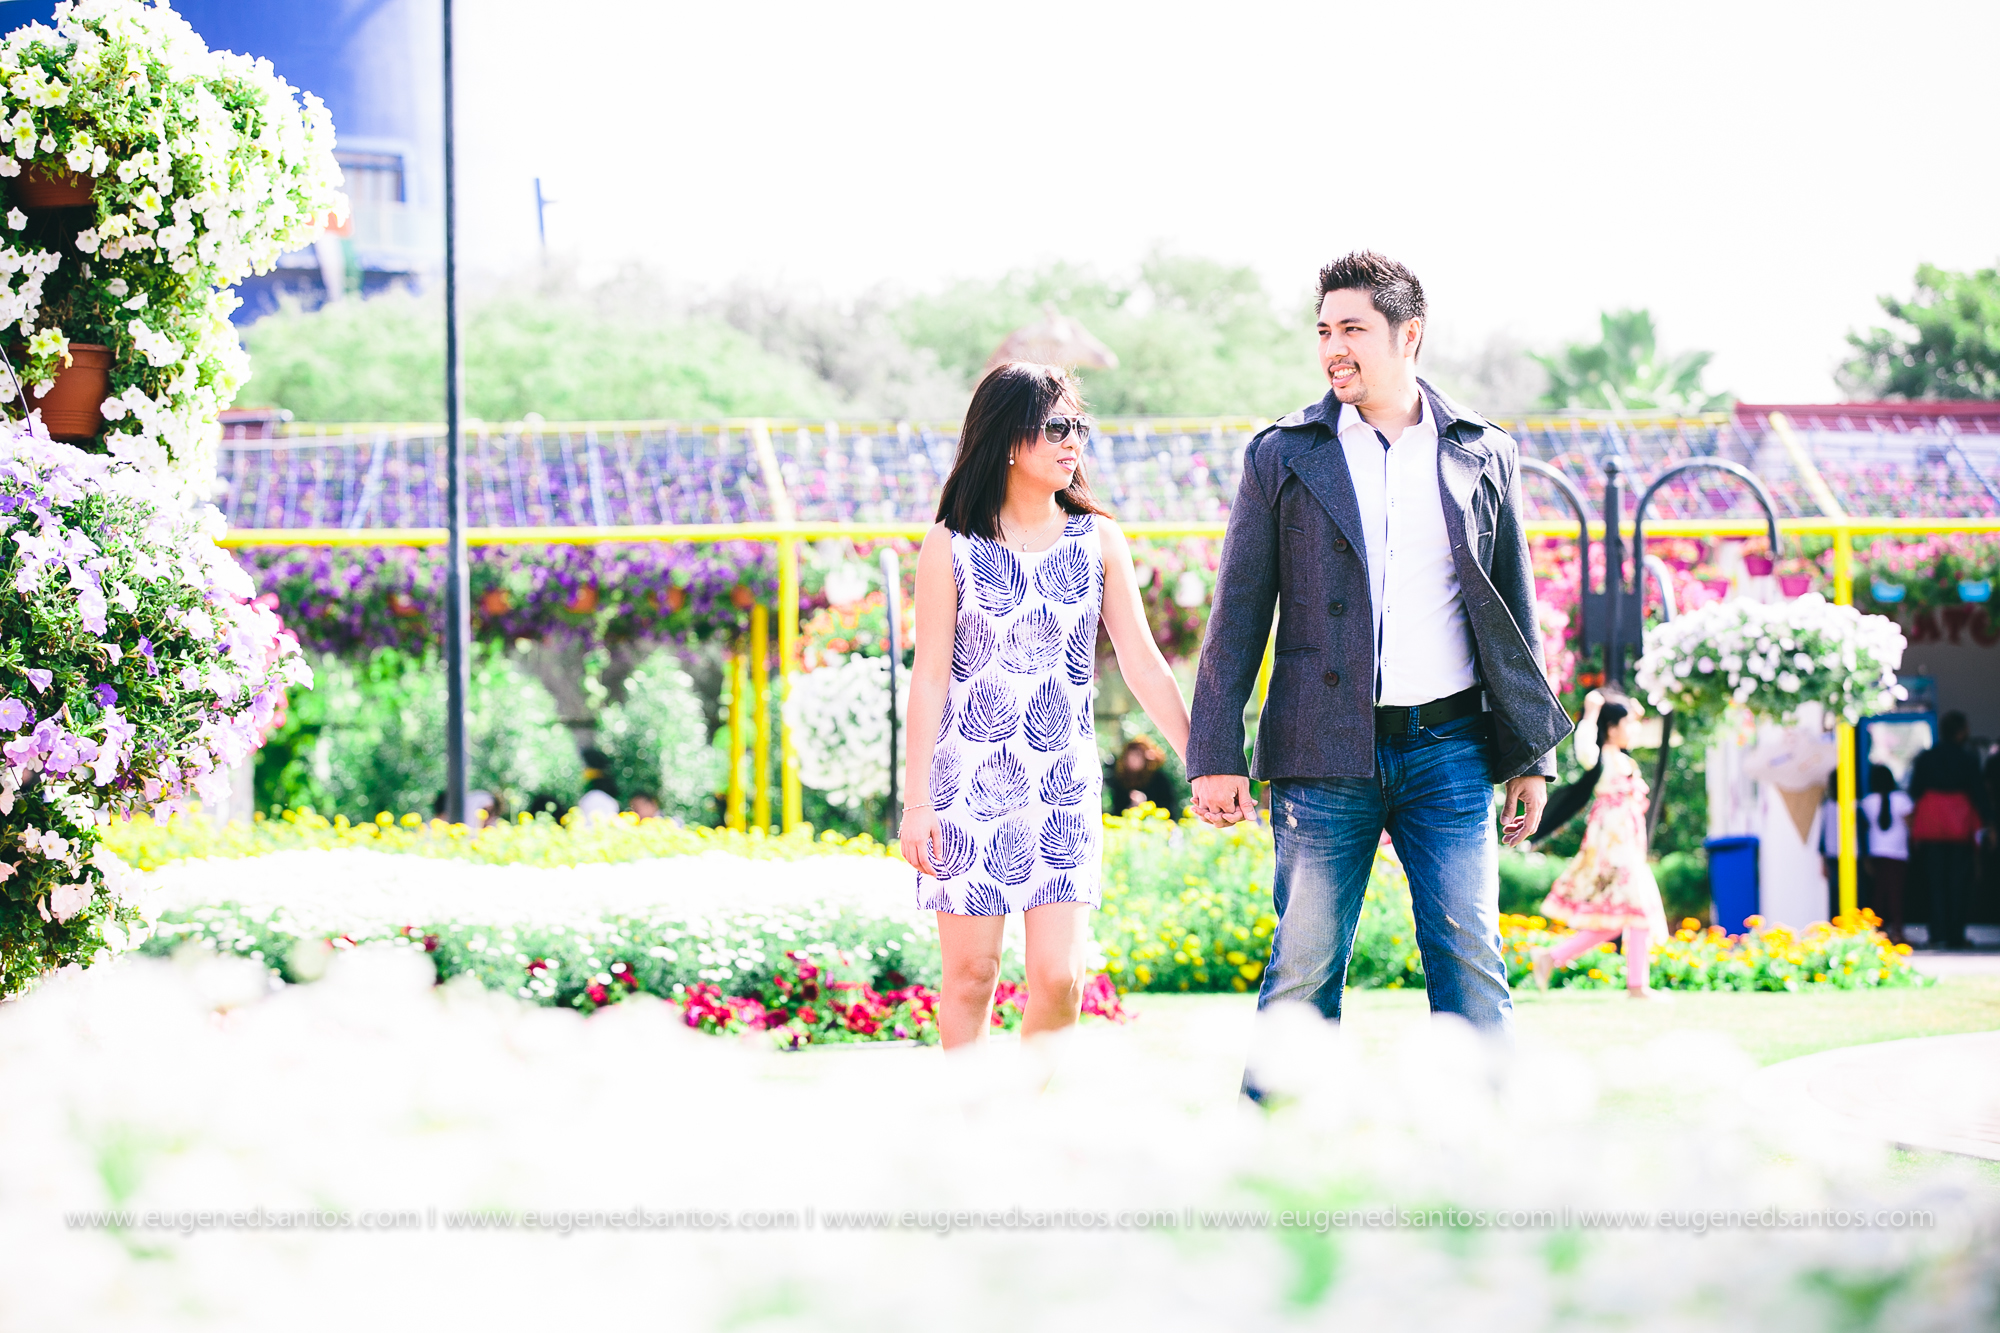 ES - Dubai Wedding Photography DR-5.jpg